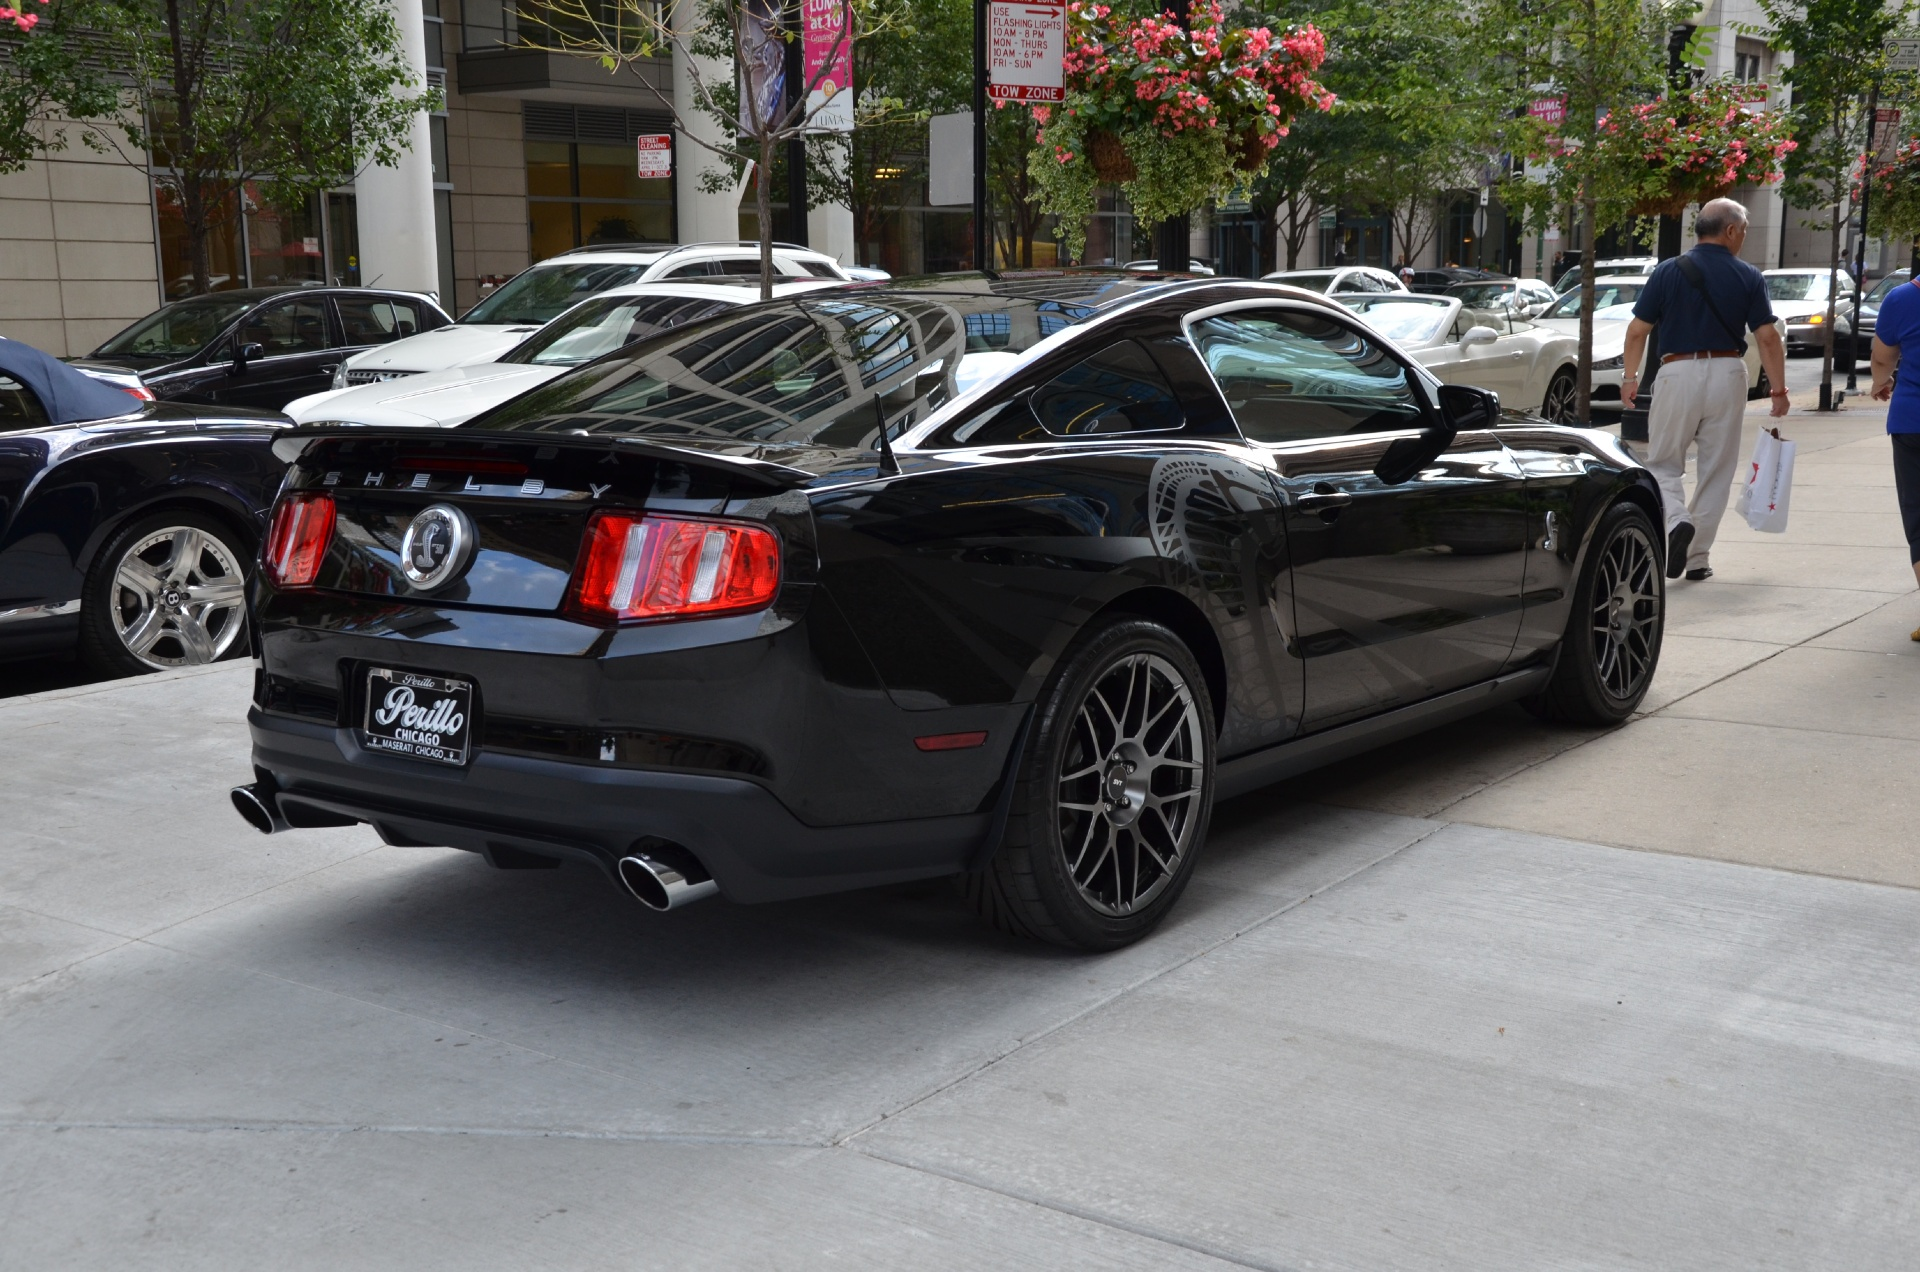 2012 ford mustang shelby gt500 stock b680aa for sale near chicago il il ford dealer. Black Bedroom Furniture Sets. Home Design Ideas